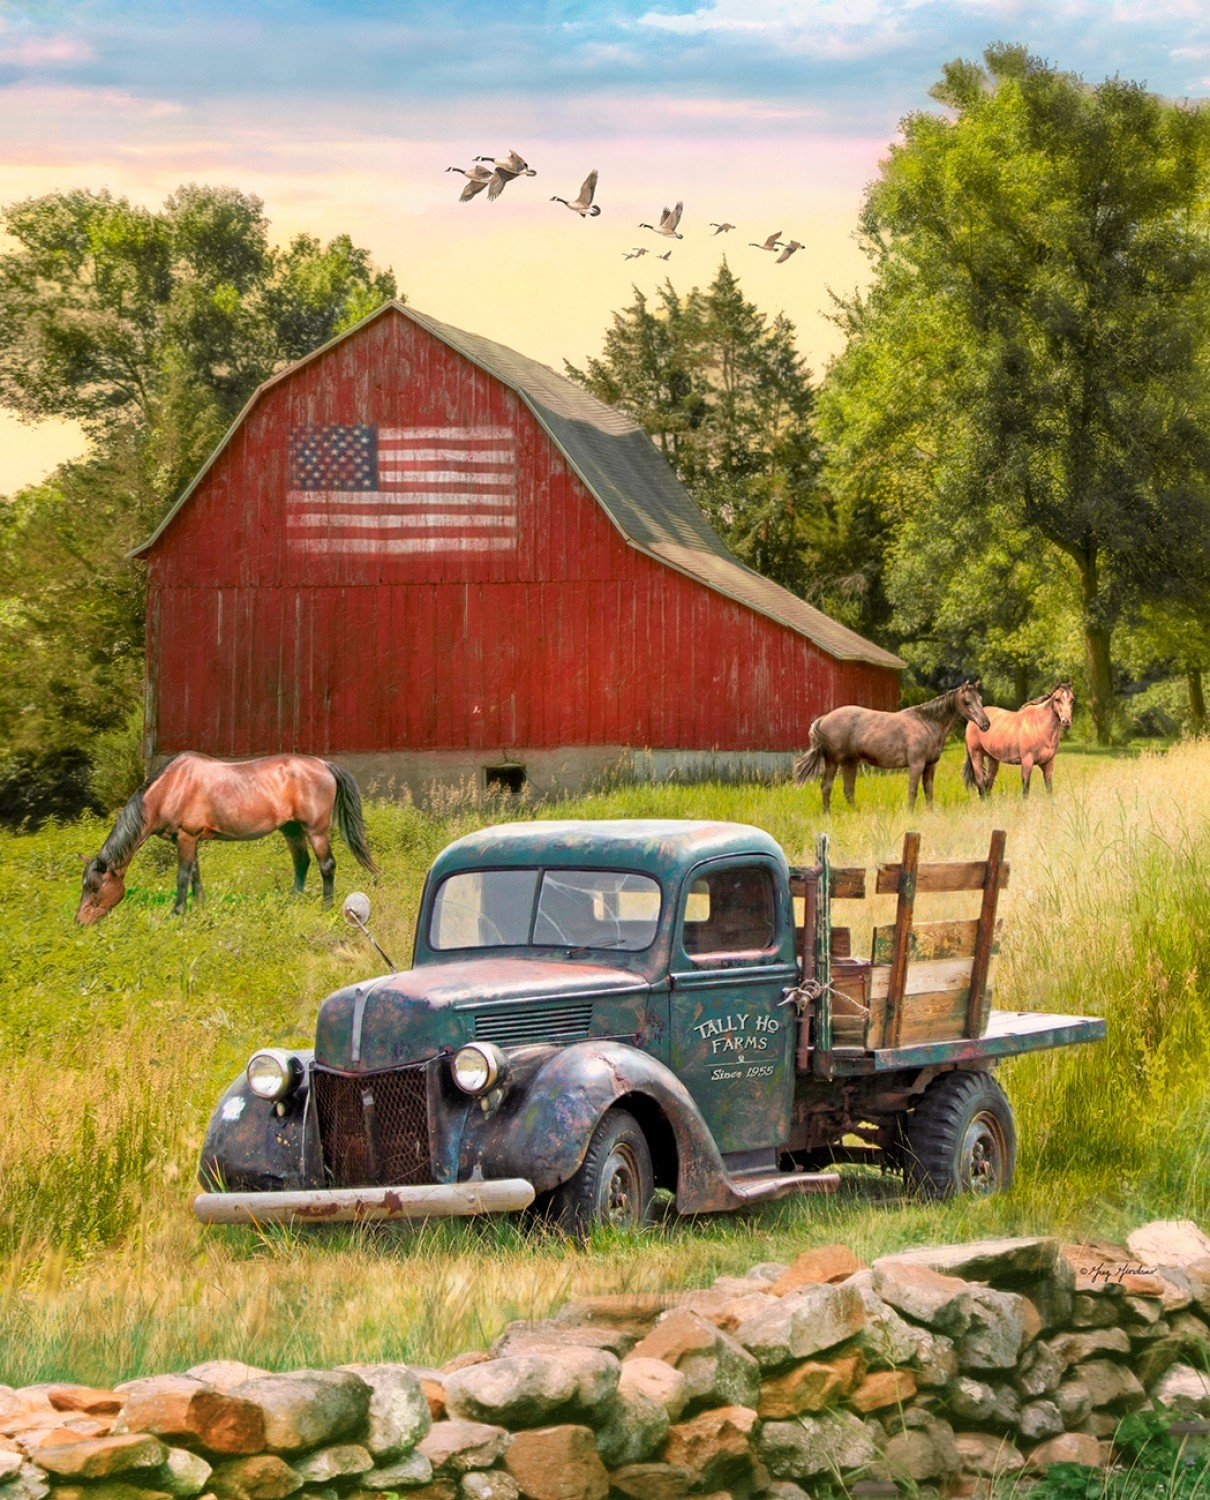 Truck Barn & Horses 36 panel by David Textiles GG-0054-OC-1Multi